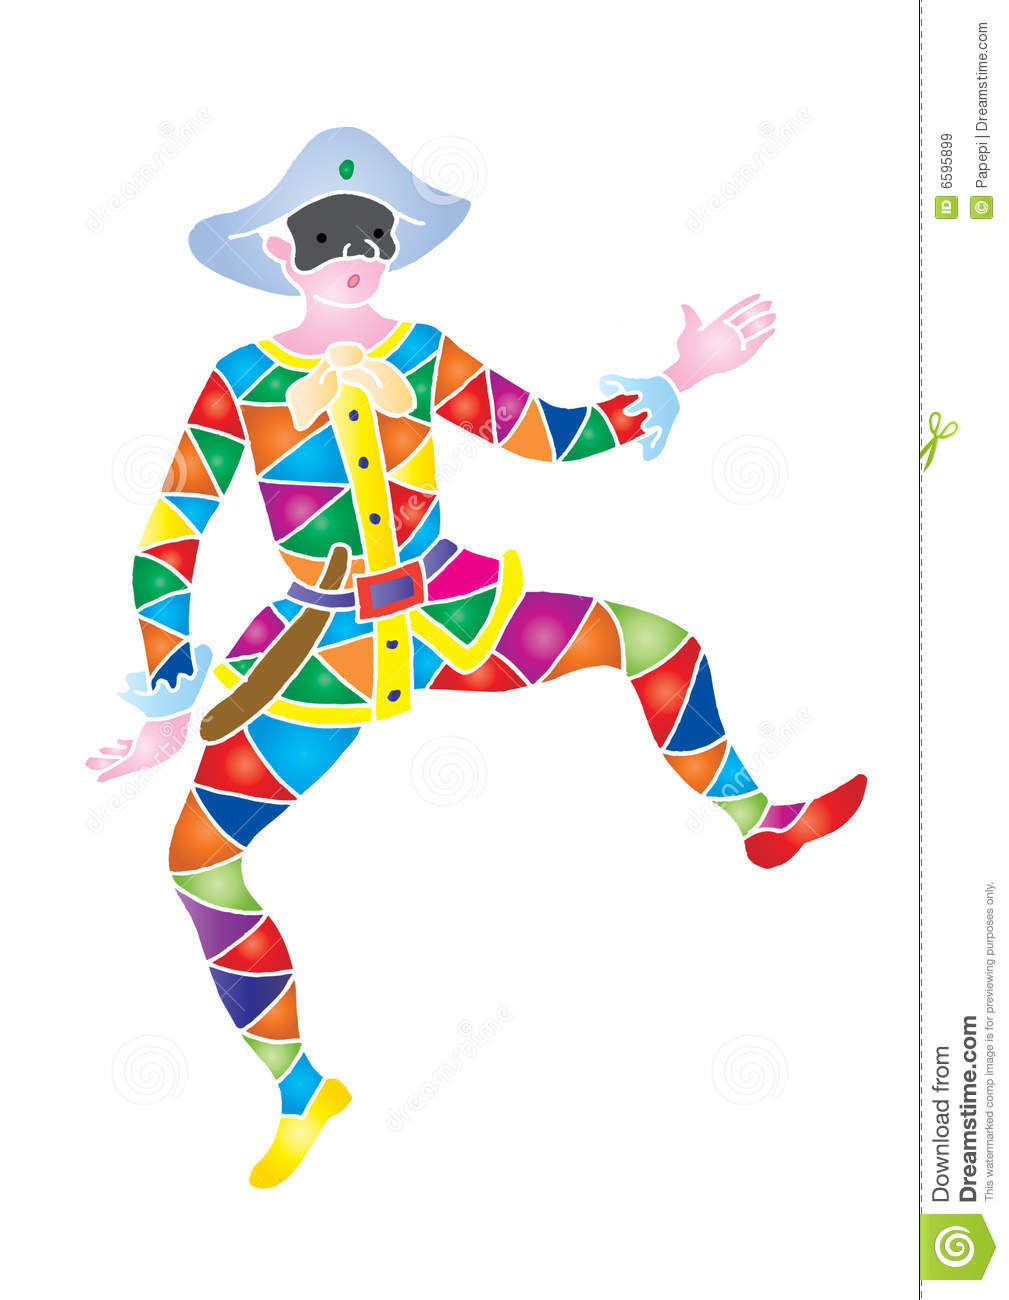 Mask arlecchino royalty free stock images image 6595899 for Arlecchino da colorare